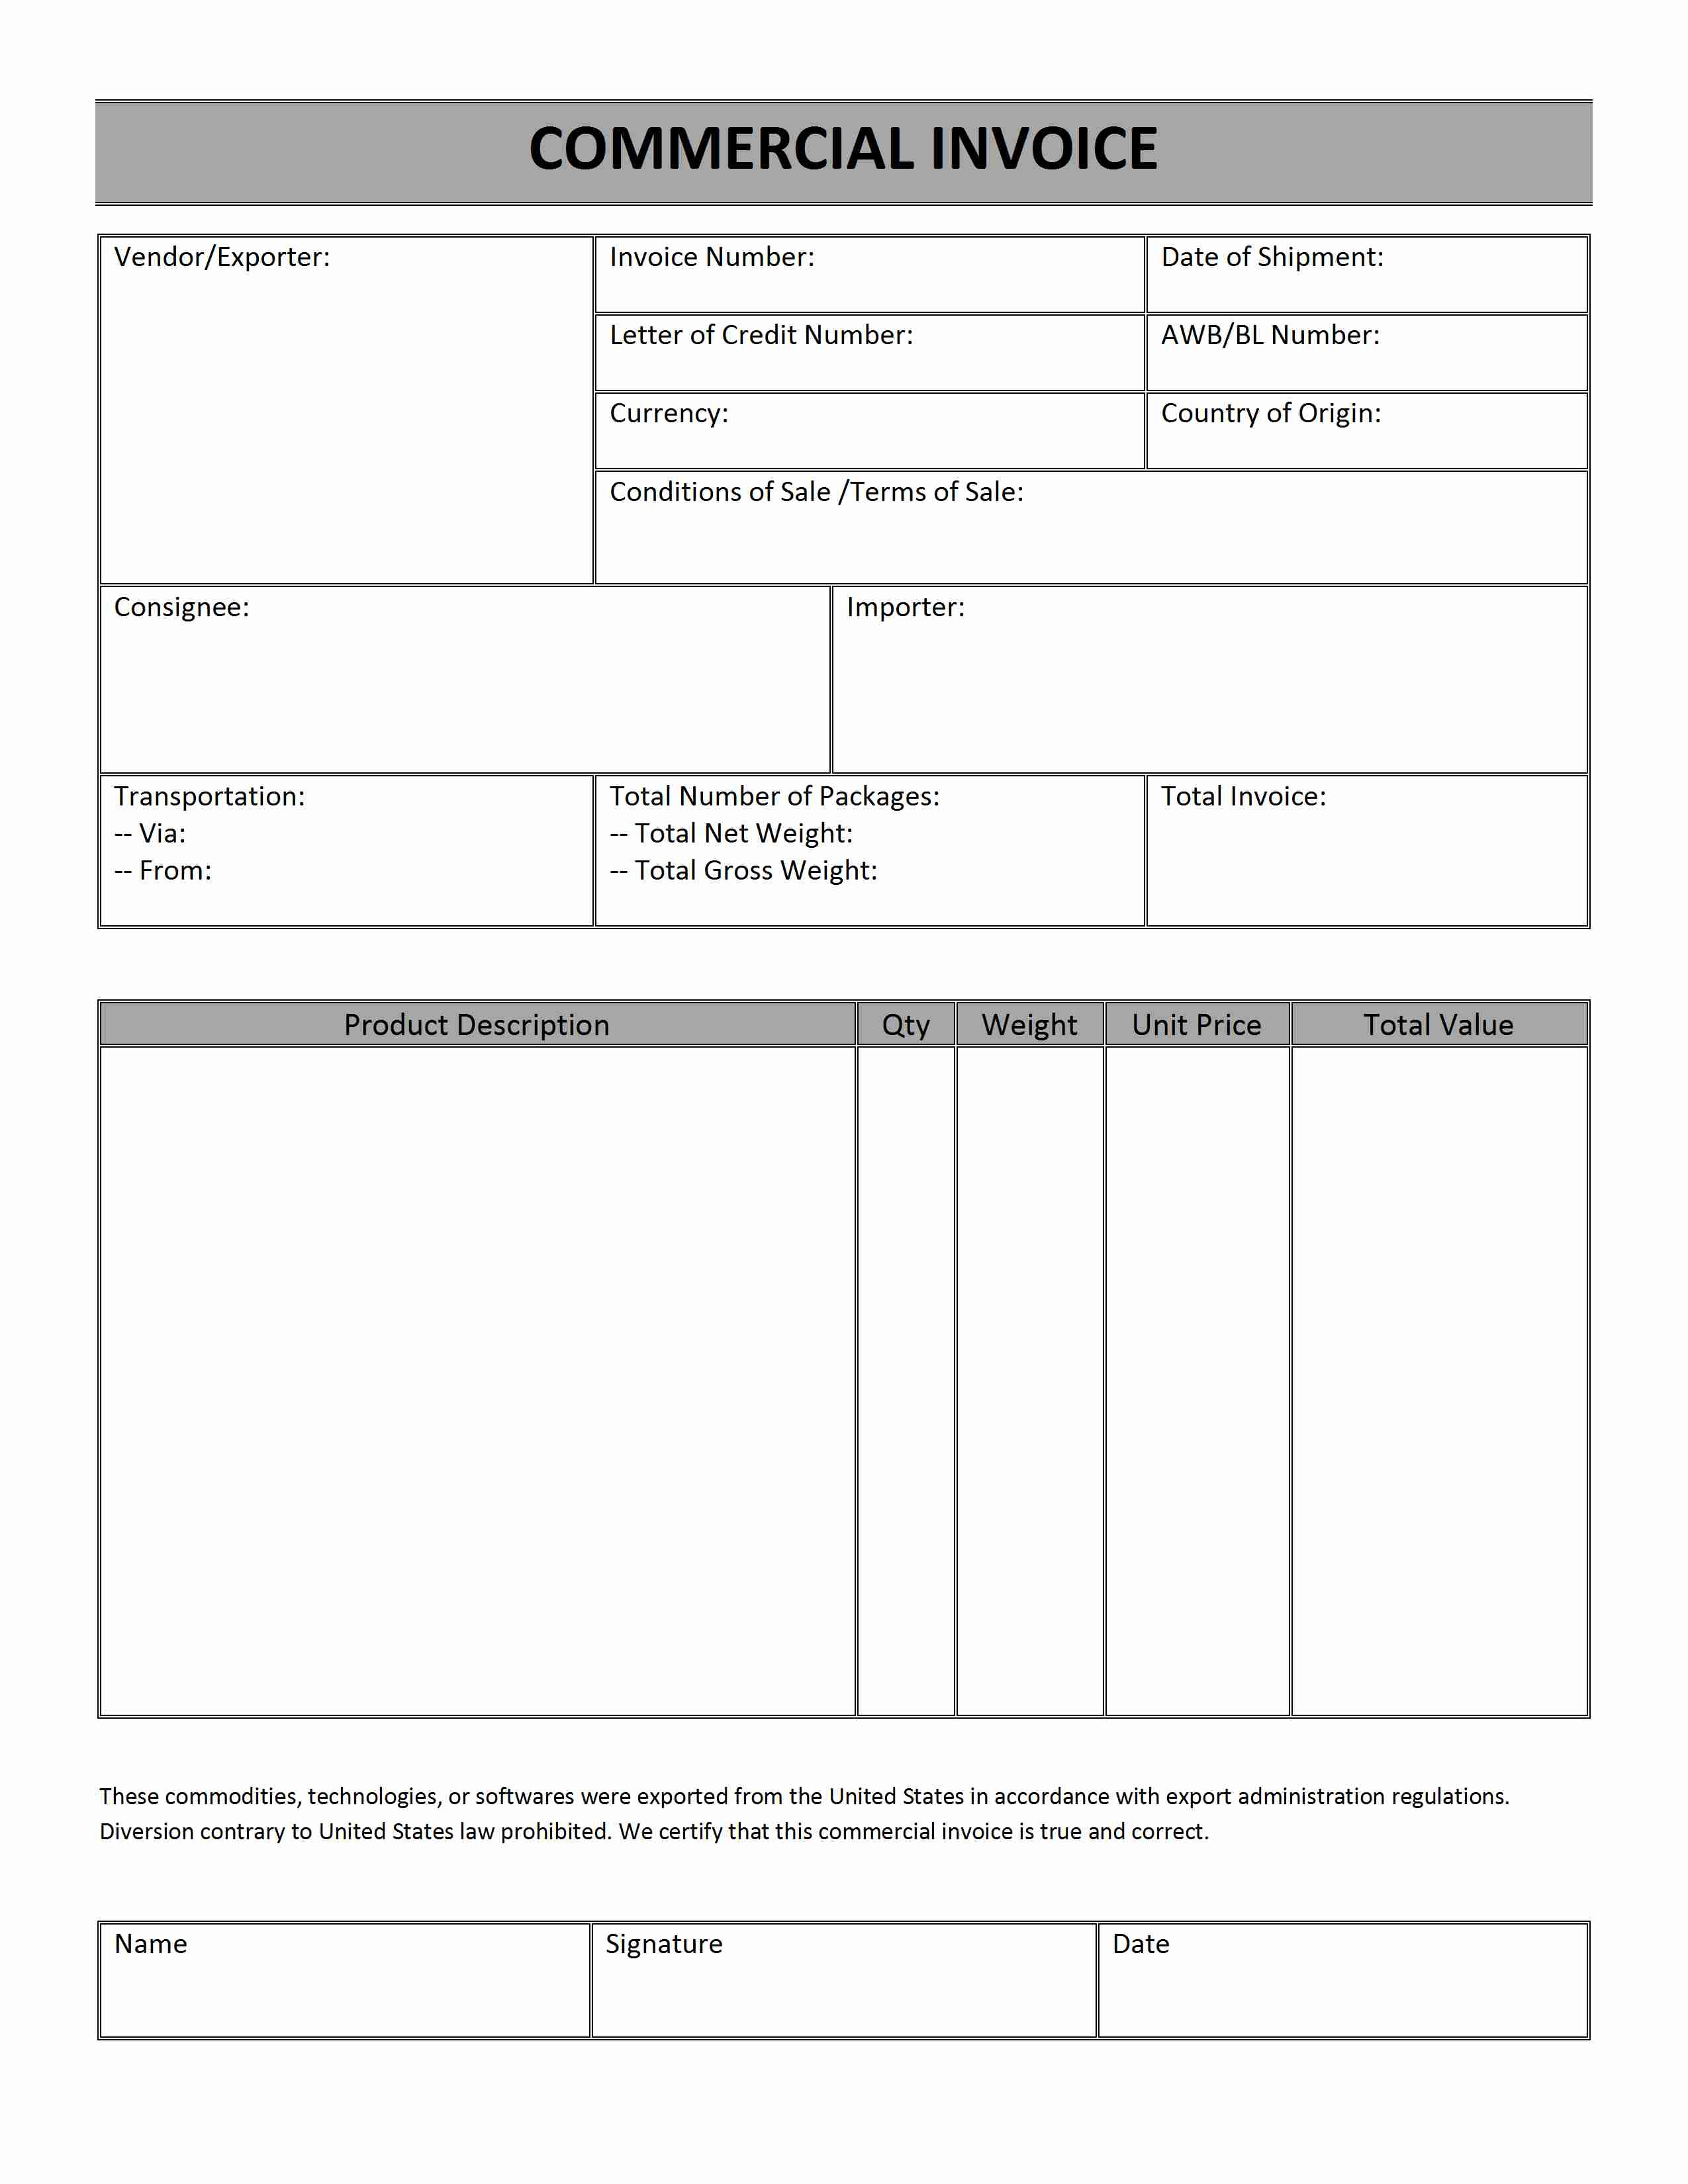 Soulfulpowerus  Fascinating Printable Sales Invoice Simple Invoice Form Free Invoice  With Fetching Printable Receipt Free  Free Printable Raffle Tickets  Receipt   Printable With Alluring Cooking Receipt Also Register Receipts In Addition Receipt For Work Done And Order Receipt Template As Well As Receipt Printer Paper Size Additionally Receipt For Rent Deposit From Happytomco With Soulfulpowerus  Fetching Printable Sales Invoice Simple Invoice Form Free Invoice  With Alluring Printable Receipt Free  Free Printable Raffle Tickets  Receipt   Printable And Fascinating Cooking Receipt Also Register Receipts In Addition Receipt For Work Done From Happytomco